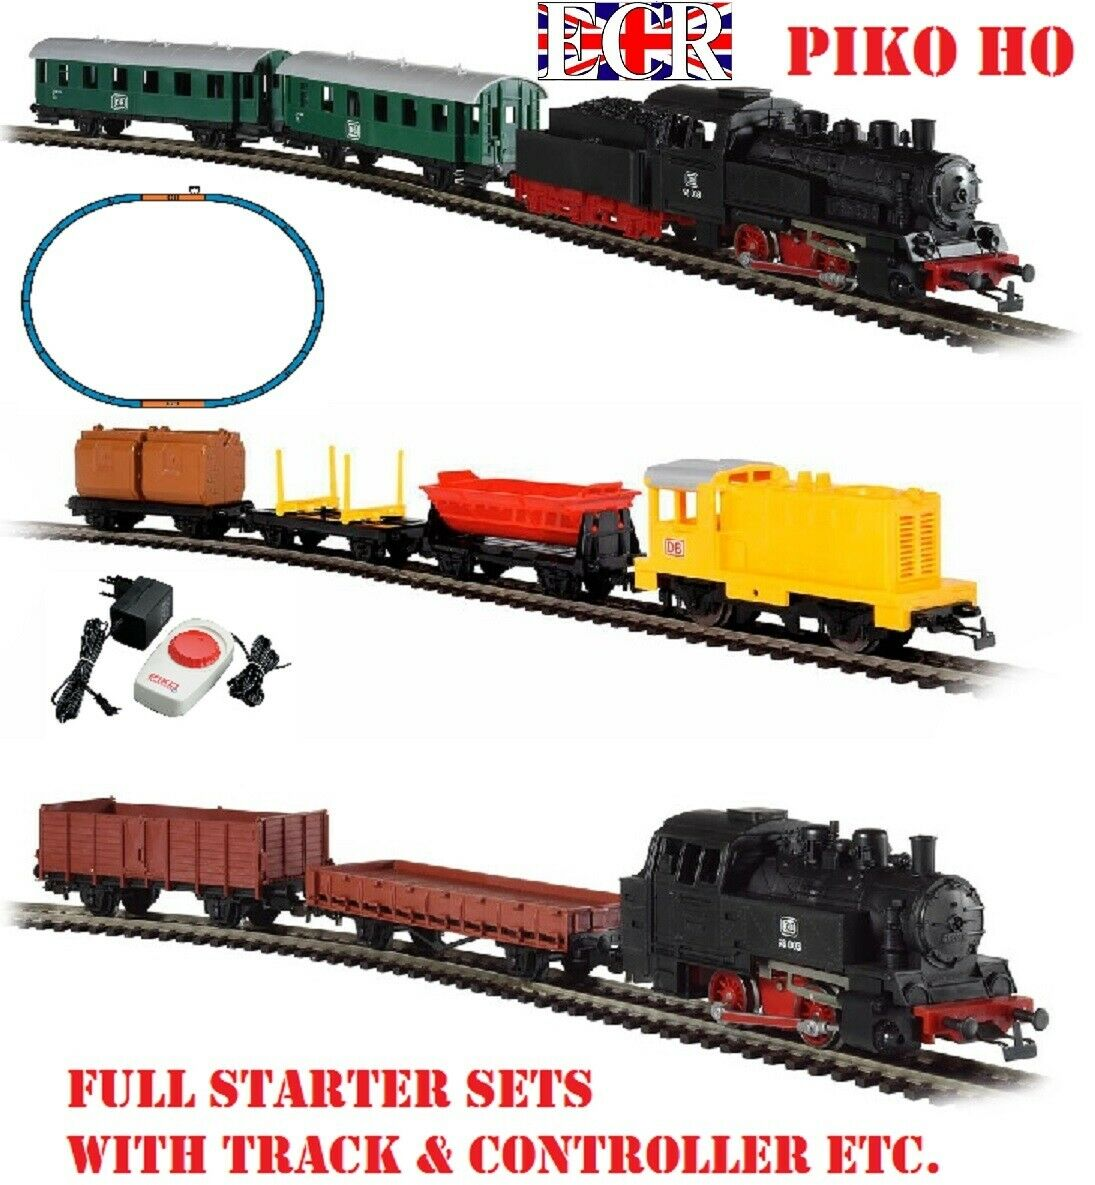 NEW PIKO HO GAUGE EstrellaTER KIDS SET XMAS SCALE TRAIN PASSENGER & RAILWAY FREIGHT